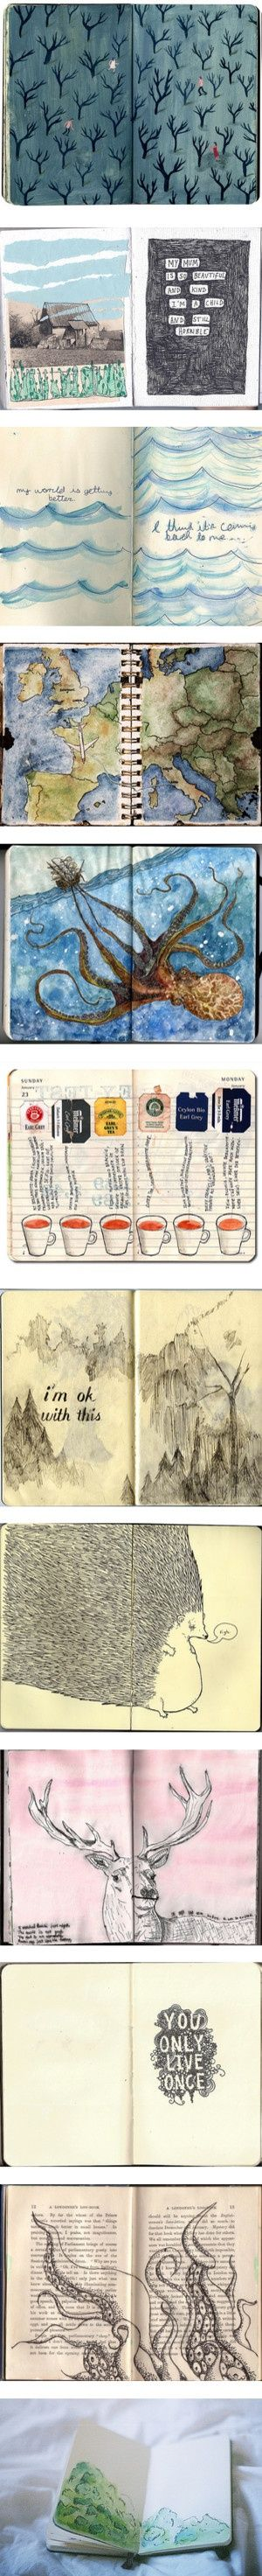 """Journals and Colorful Drawings"" by camilla-adamowicz"